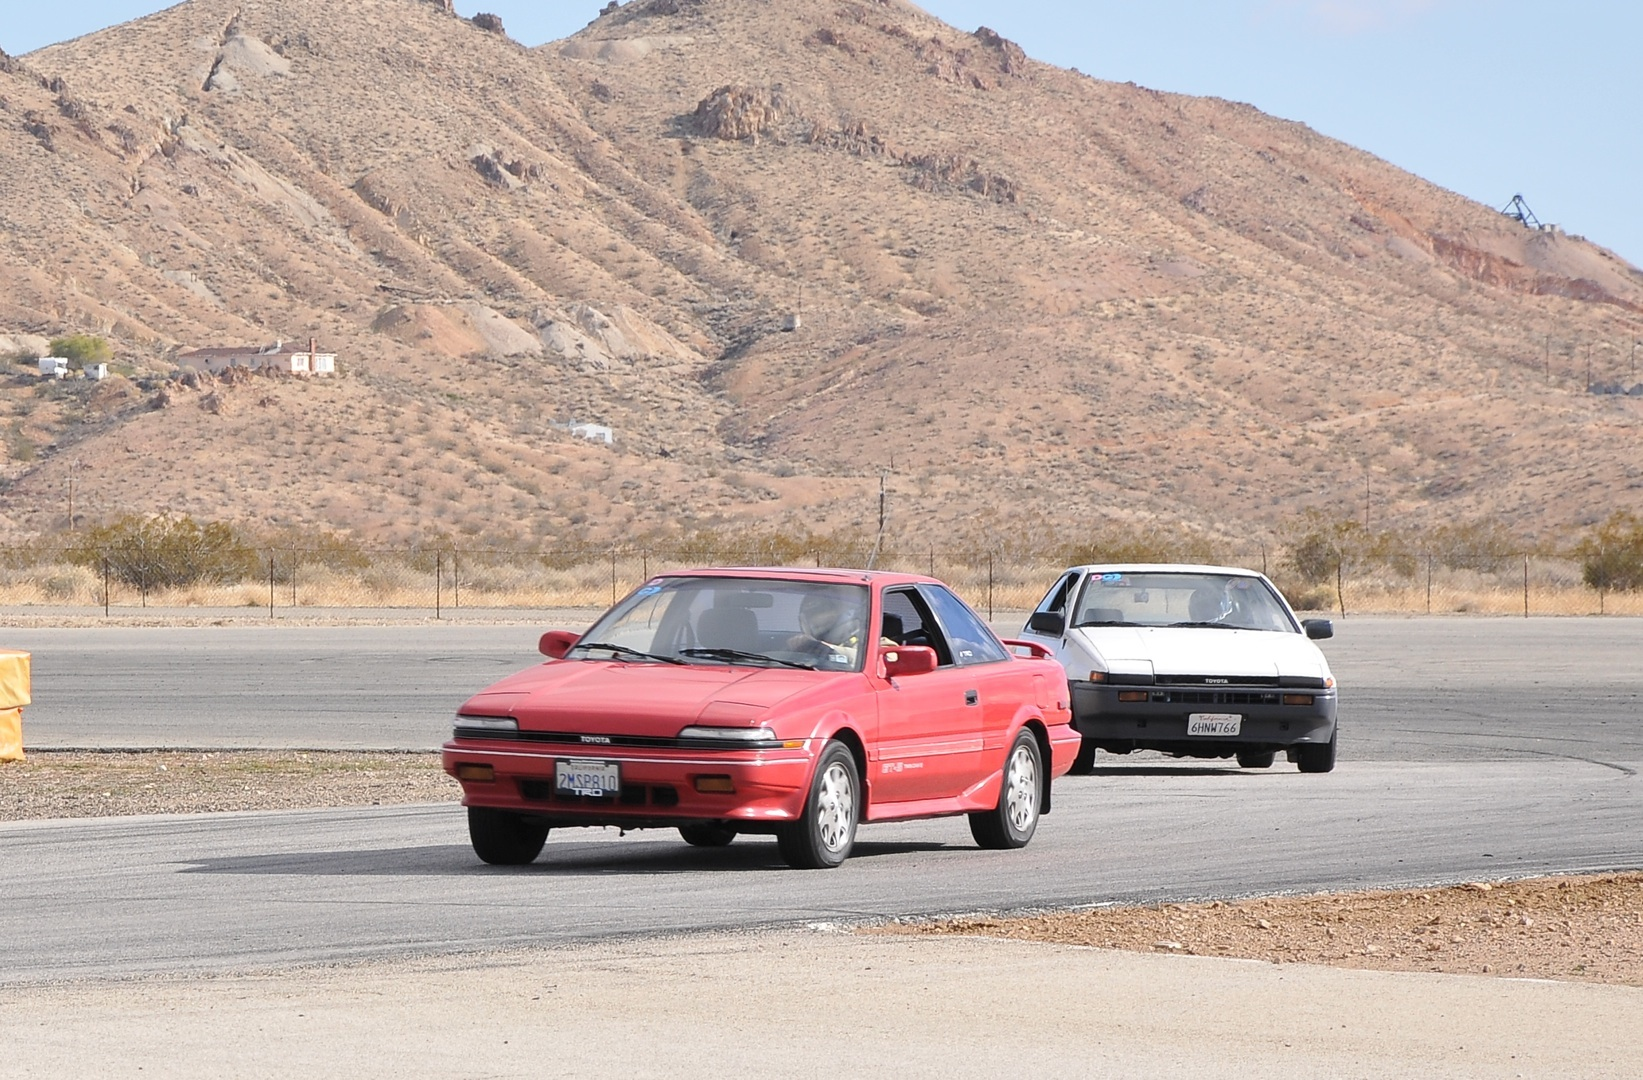 AE92, GT-S, redtop 4ag,track day, grip day